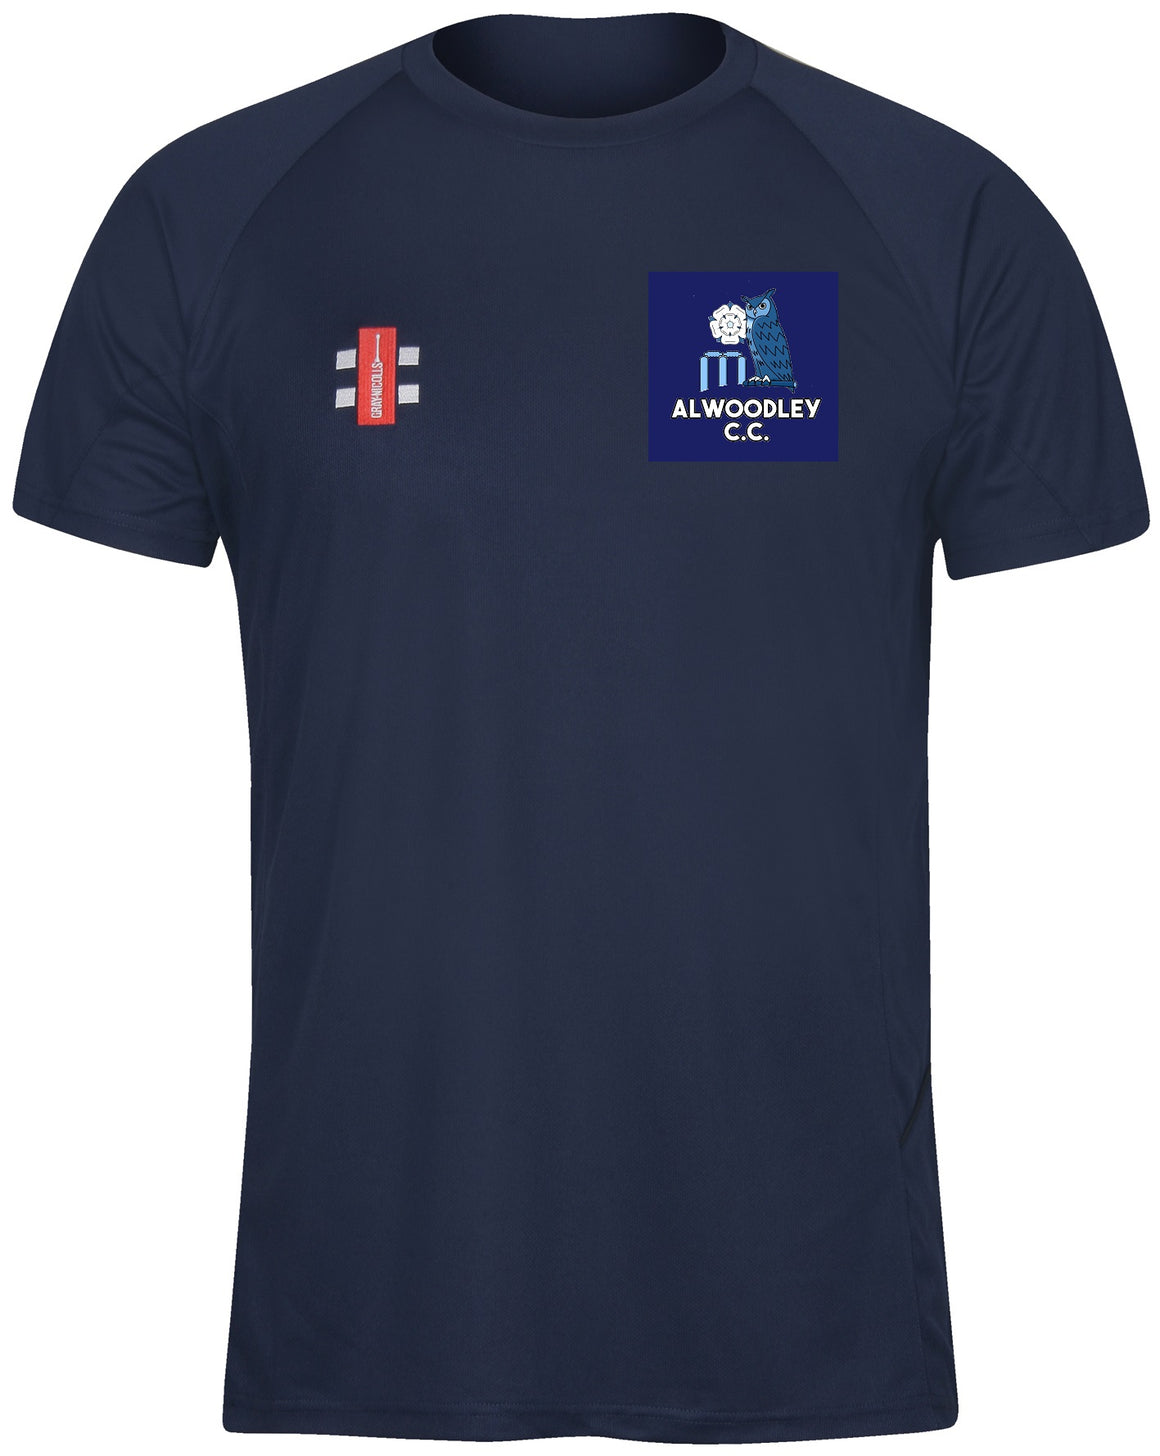 Alwoodley Training Shirt